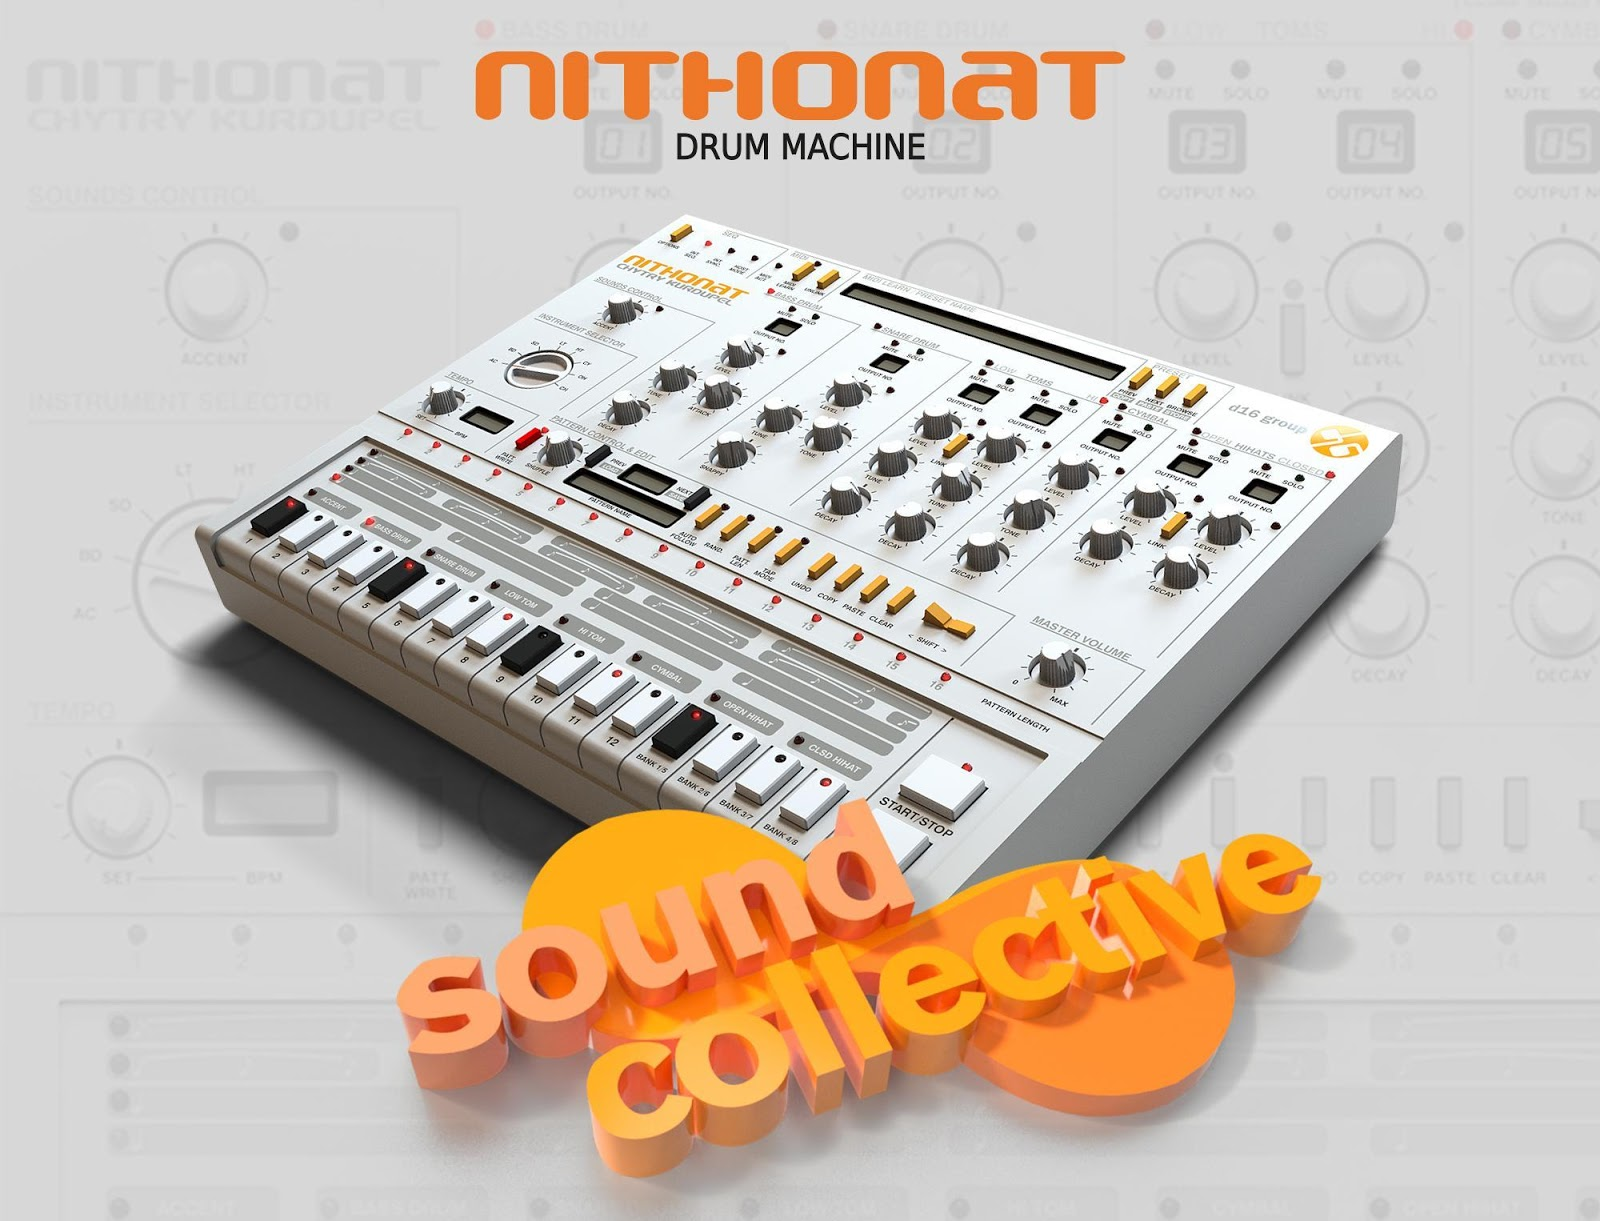 matrixsynth novation offers free d16 nithonat plugin drum machine 50 discount rest of the. Black Bedroom Furniture Sets. Home Design Ideas